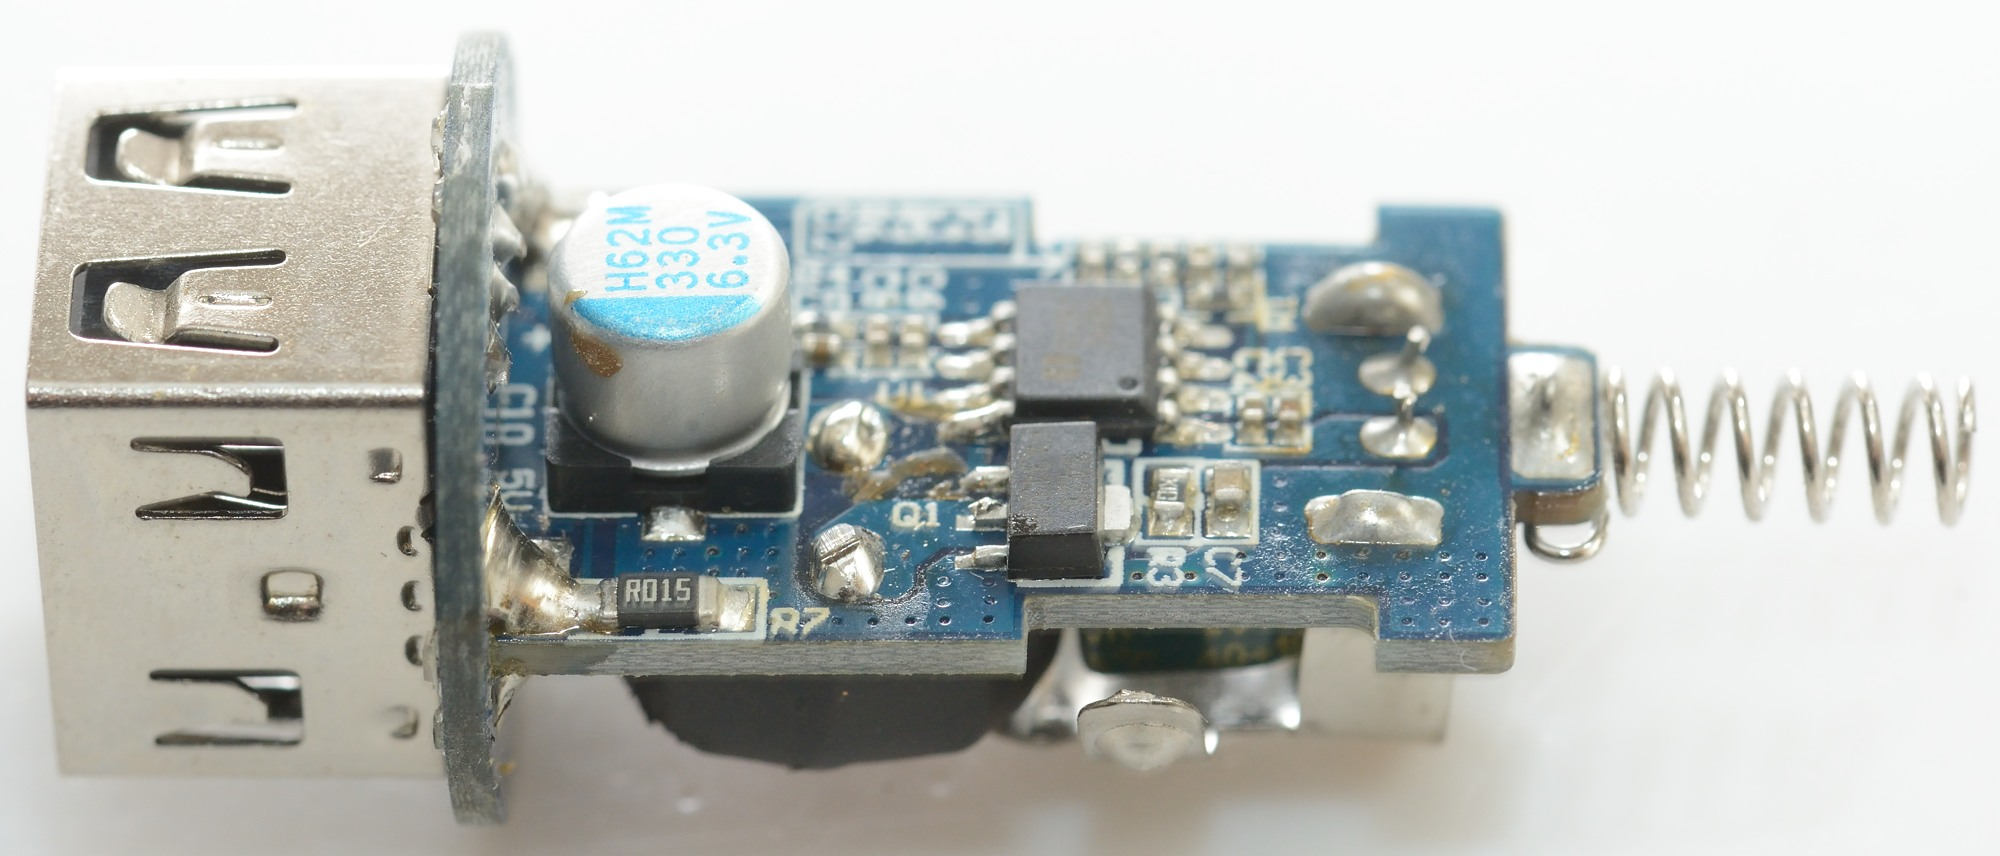 Test Review Of Chuwi Ublue Dual Usb Car Charger C 100 Circuit Diagram On The Round Board Is A Small Ic This Chip For Automatic Coding Outputs